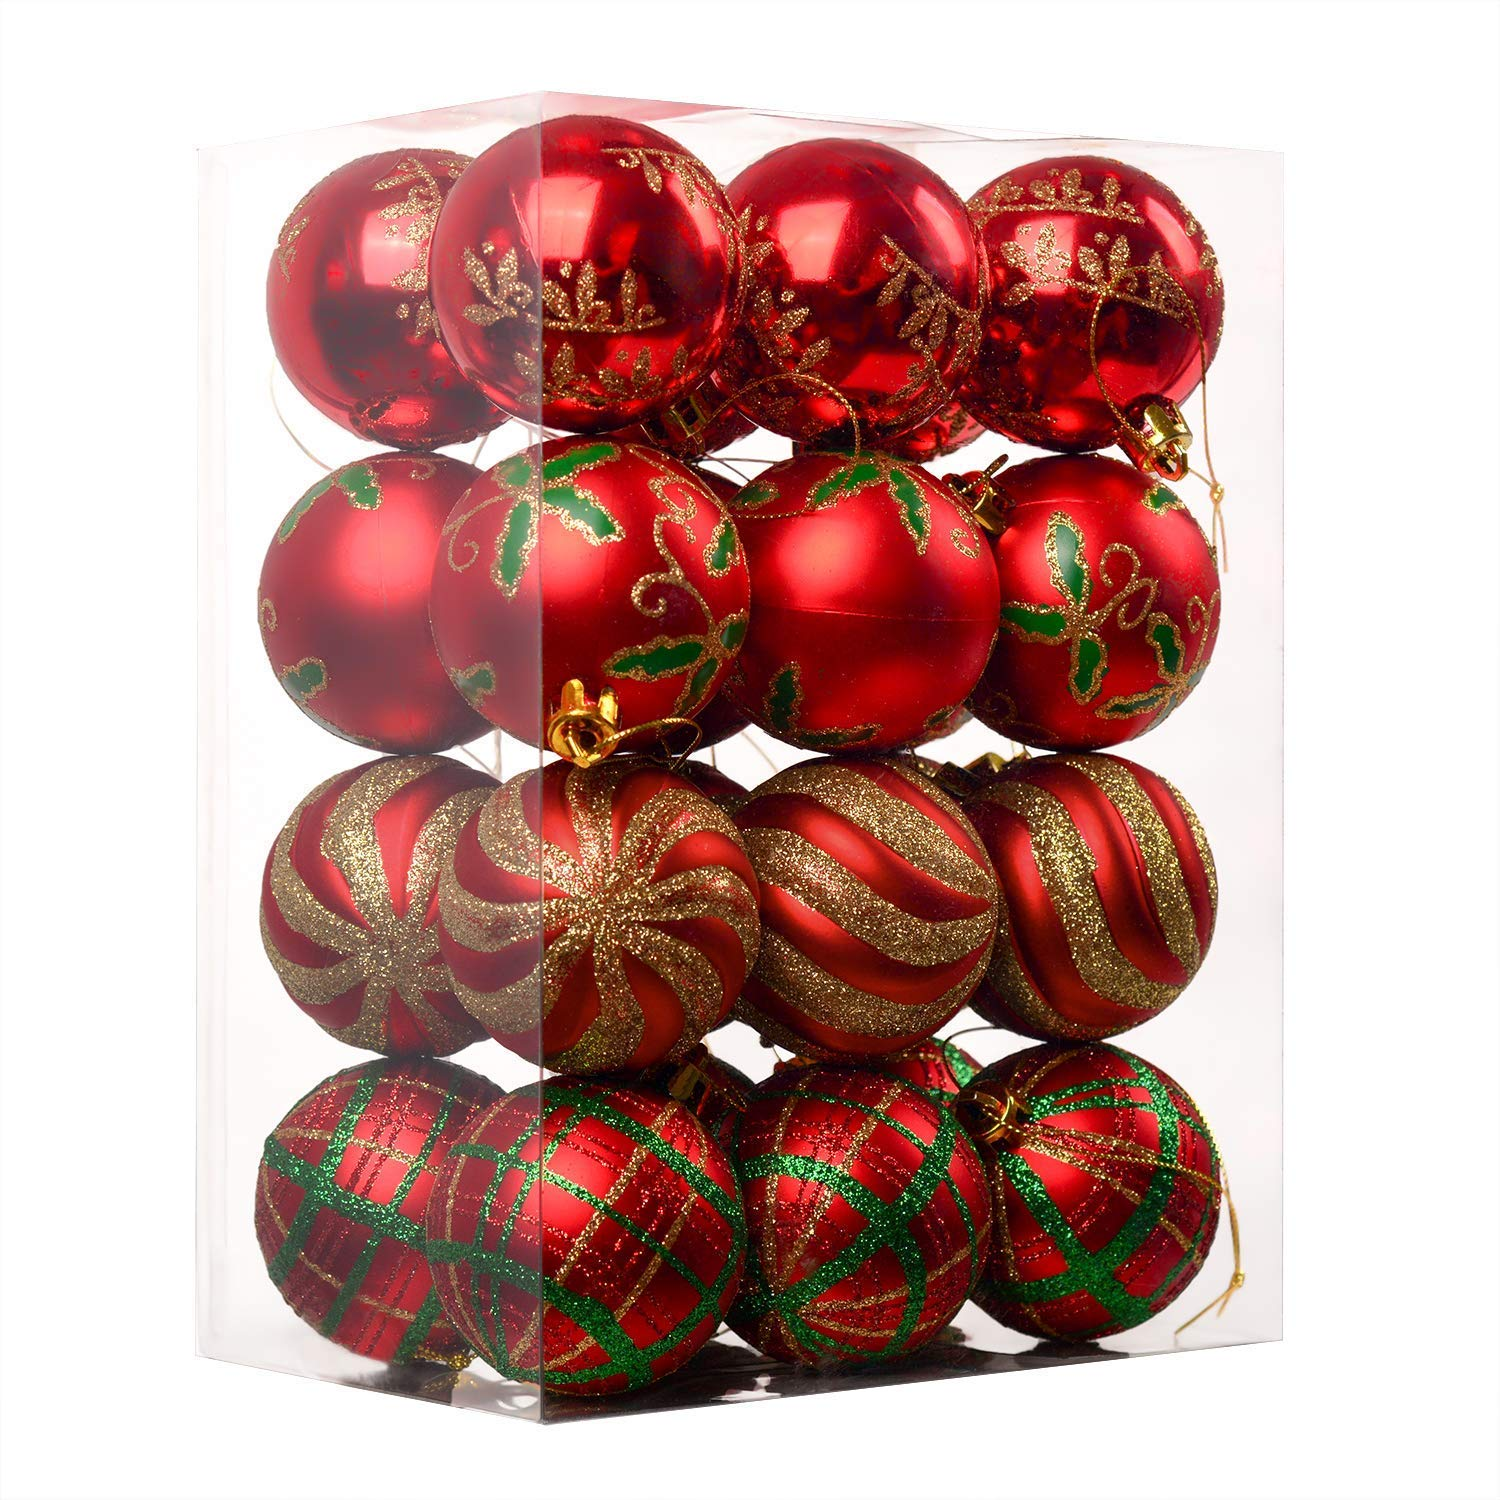 Valery Madelyn 24ct 60mm Traditional Red and White Shatterproof Christmas Ball Ornaments Decoration, Themed with Tree Skirt(Not Included)